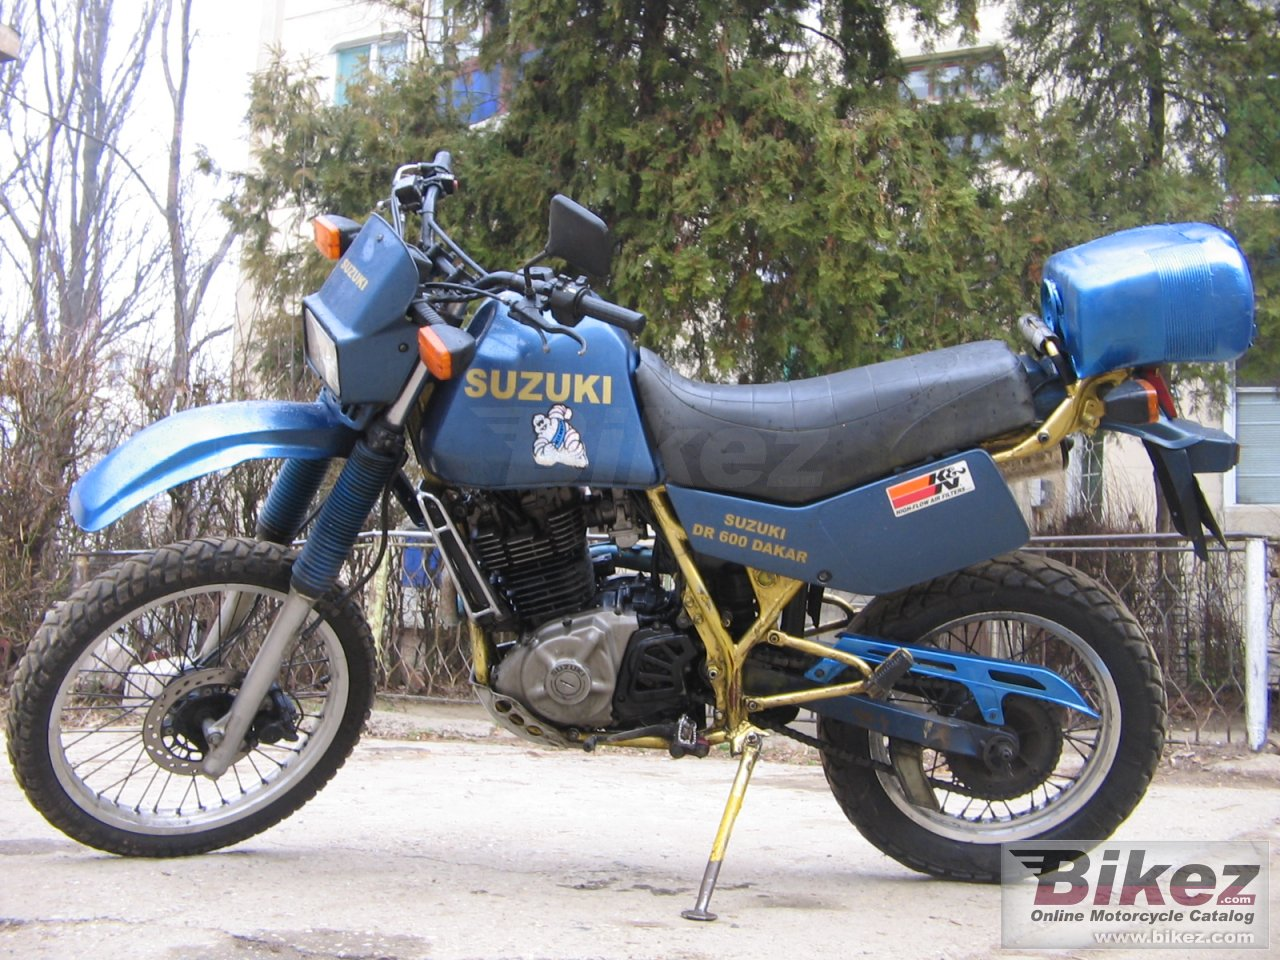 Big  dr 600 s picture and wallpaper from Bikez.com